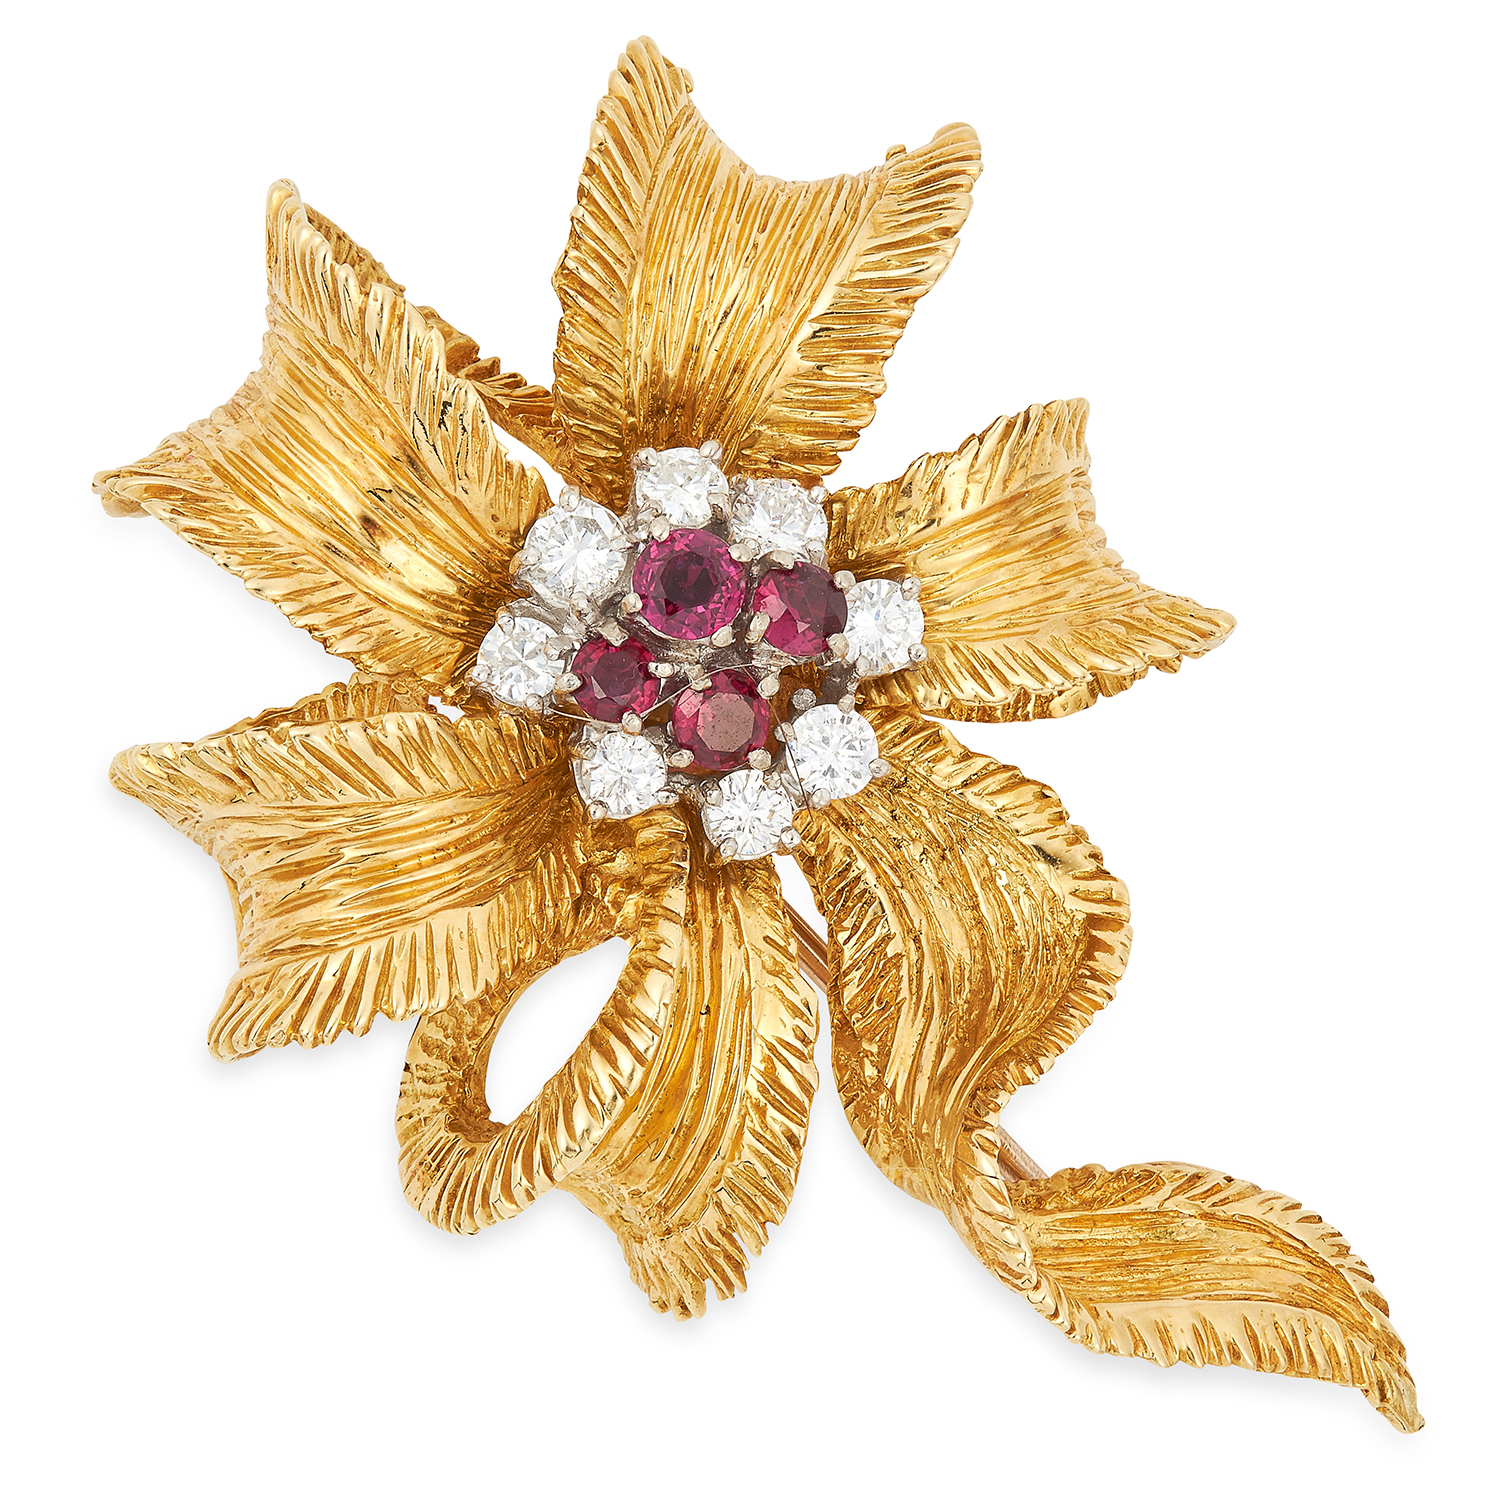 A RUBY AND DIAMOND RIBBON BROOCH, KUTCHINSKY, CIRCA 1960 set with a cluster of round cut rubies